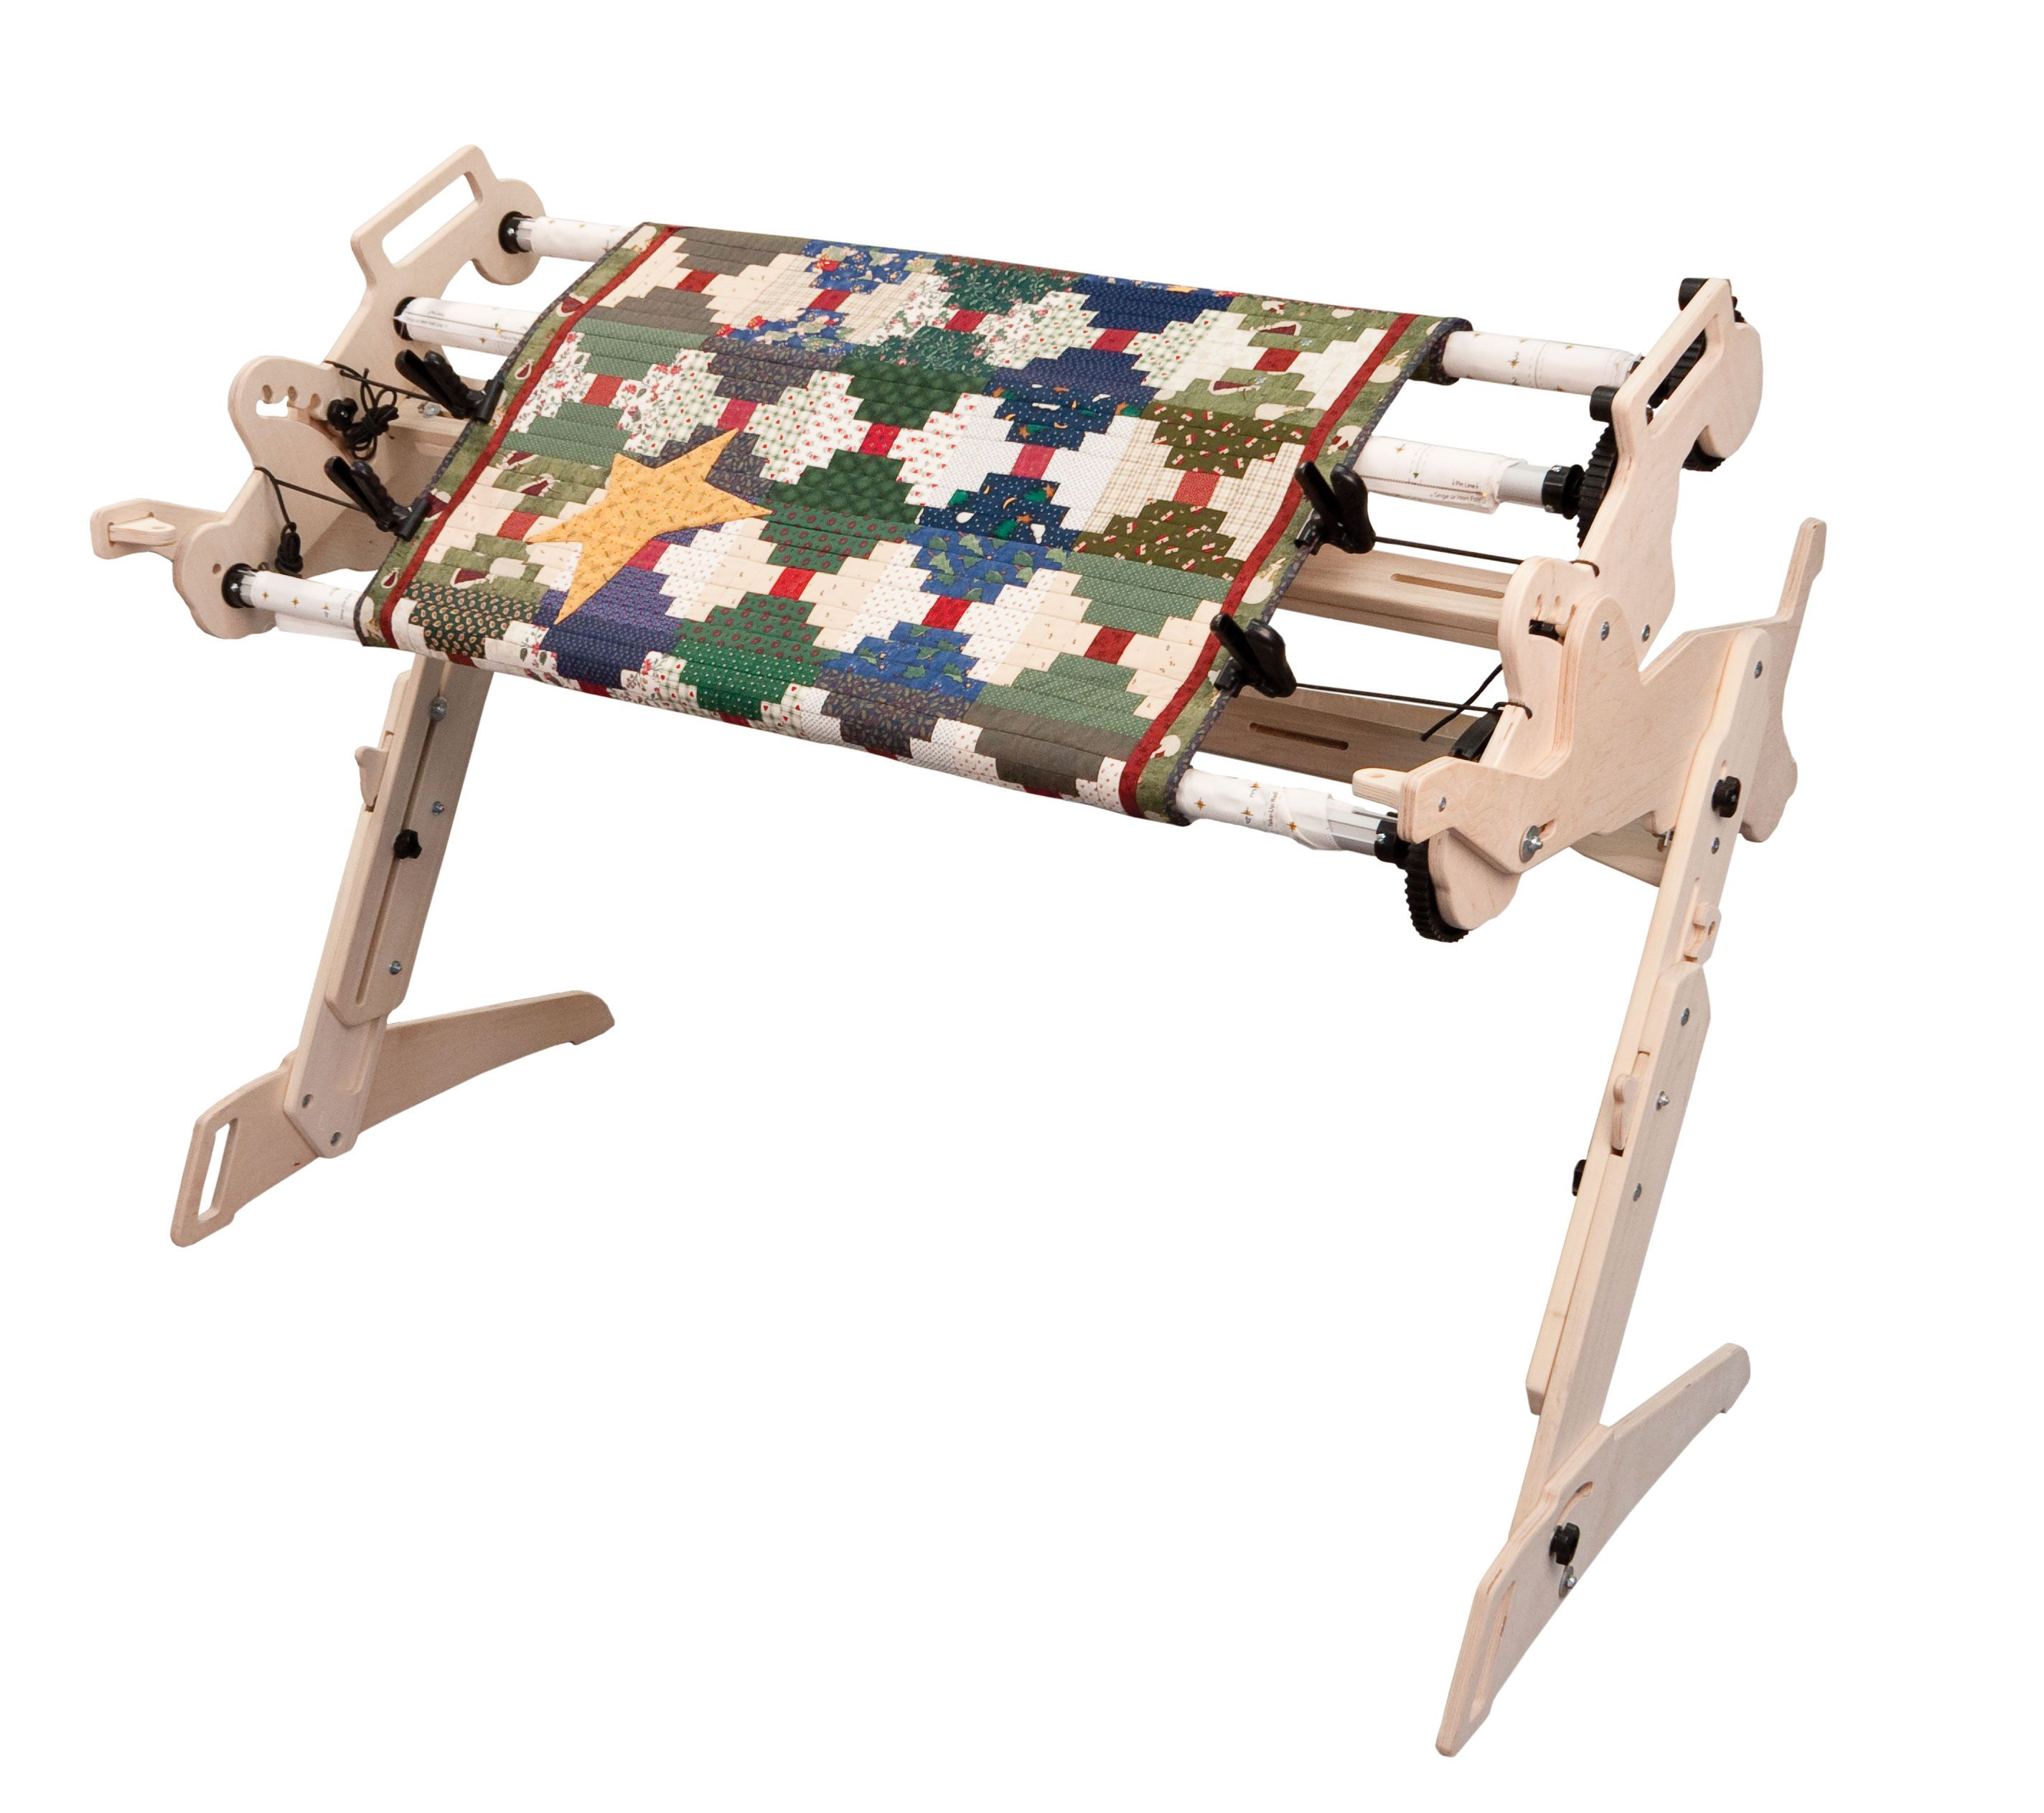 Grace Z44 Fabri-Fast Hand Quilting Frame - adjustable to 4 sizes ...